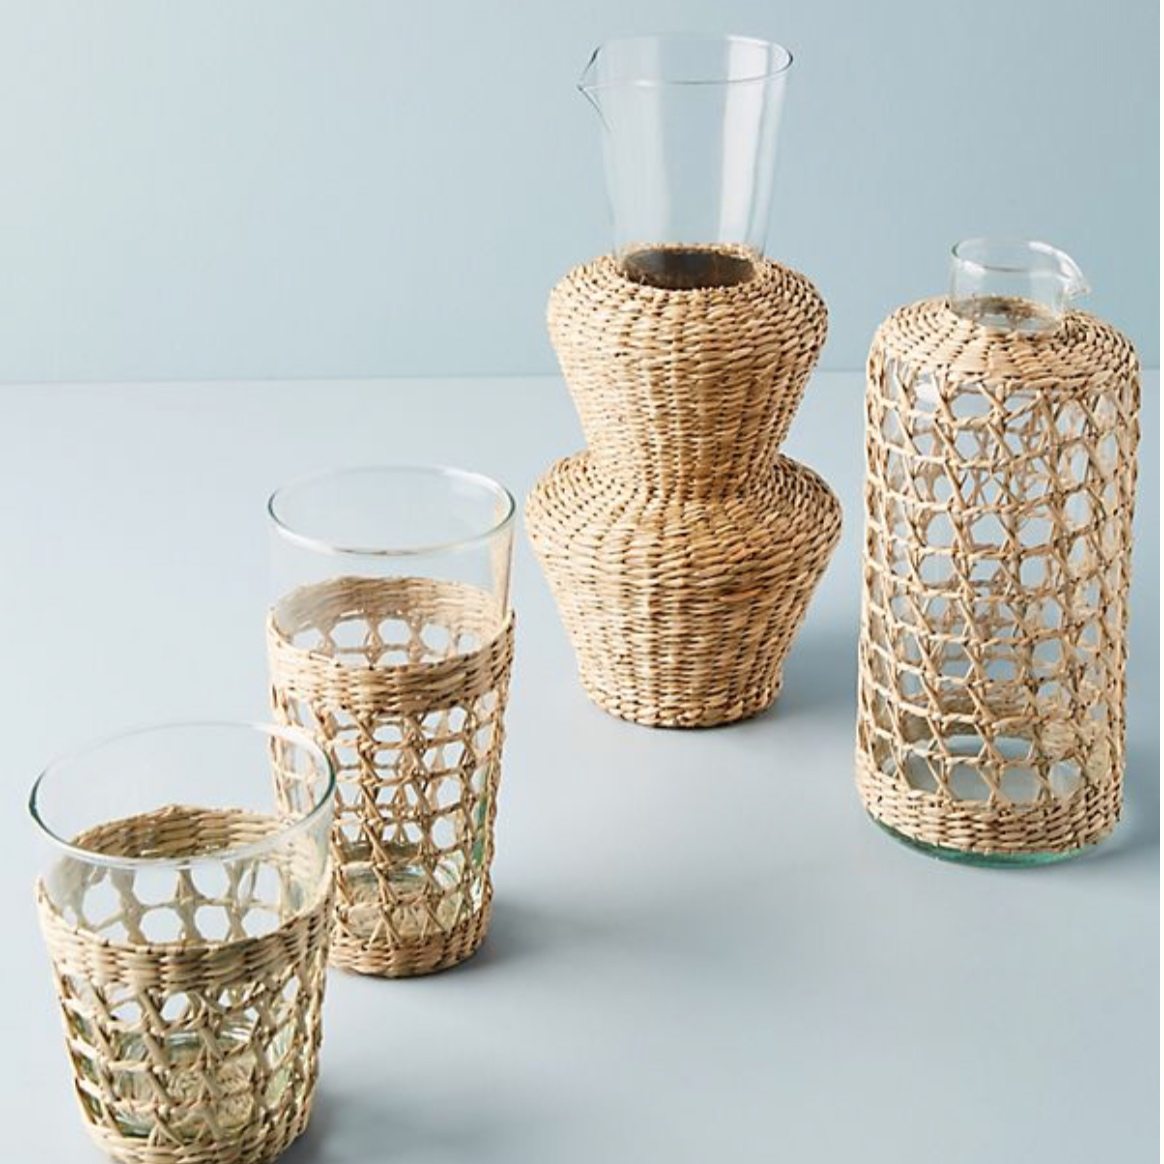 Seagrass Wrapped Carafe: Reduced from £36 to £21